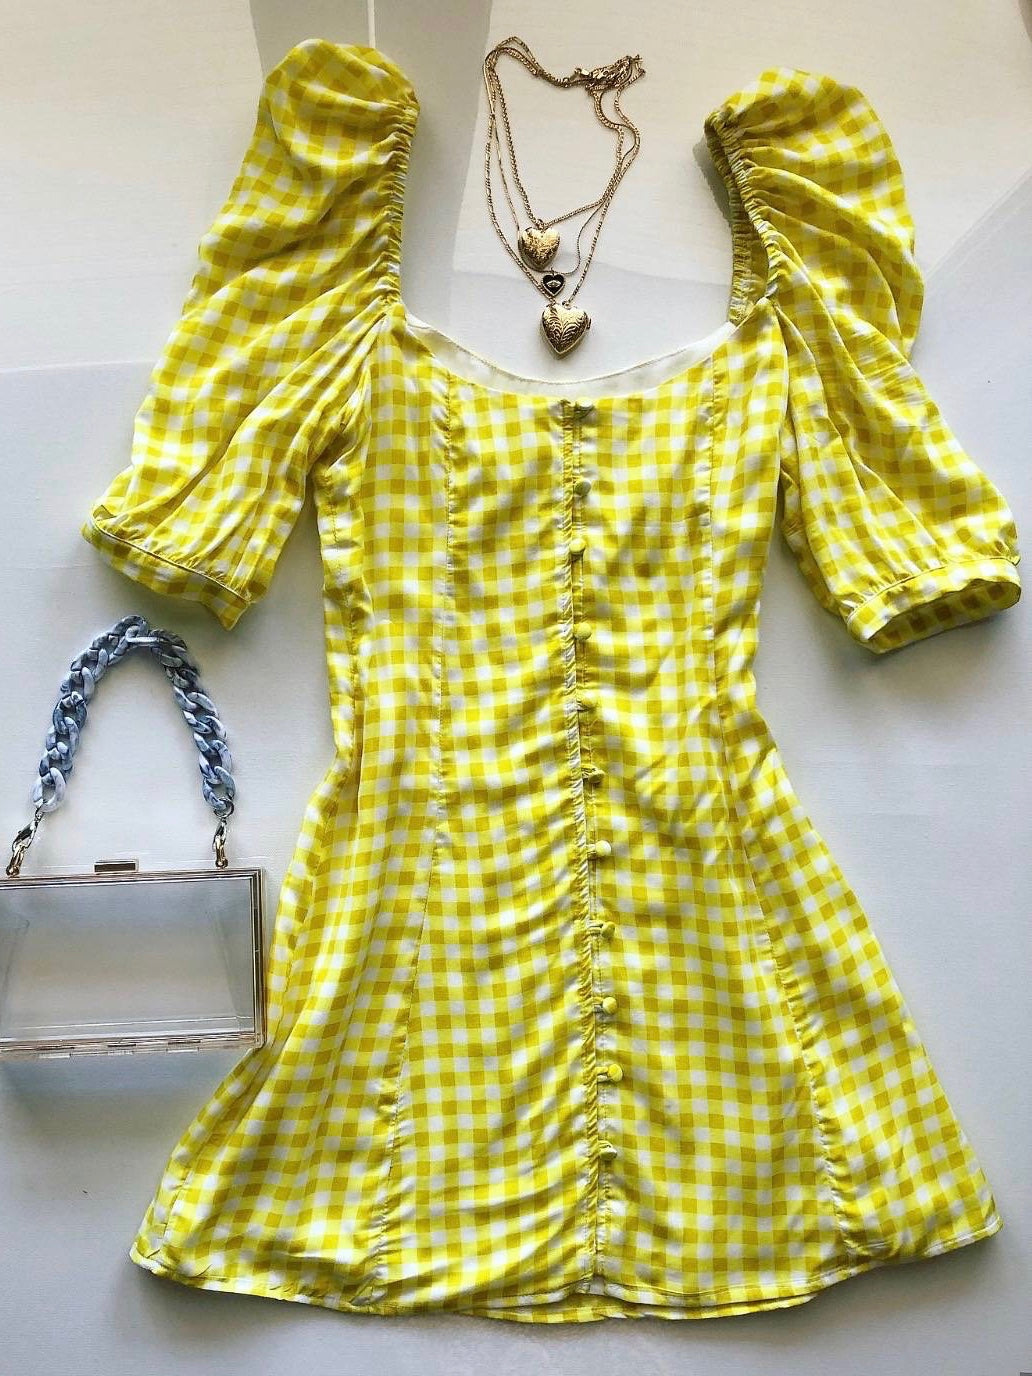 Samples The Cherry Dress: Yellow Gingham | SAMPLE Vanessa Mooney